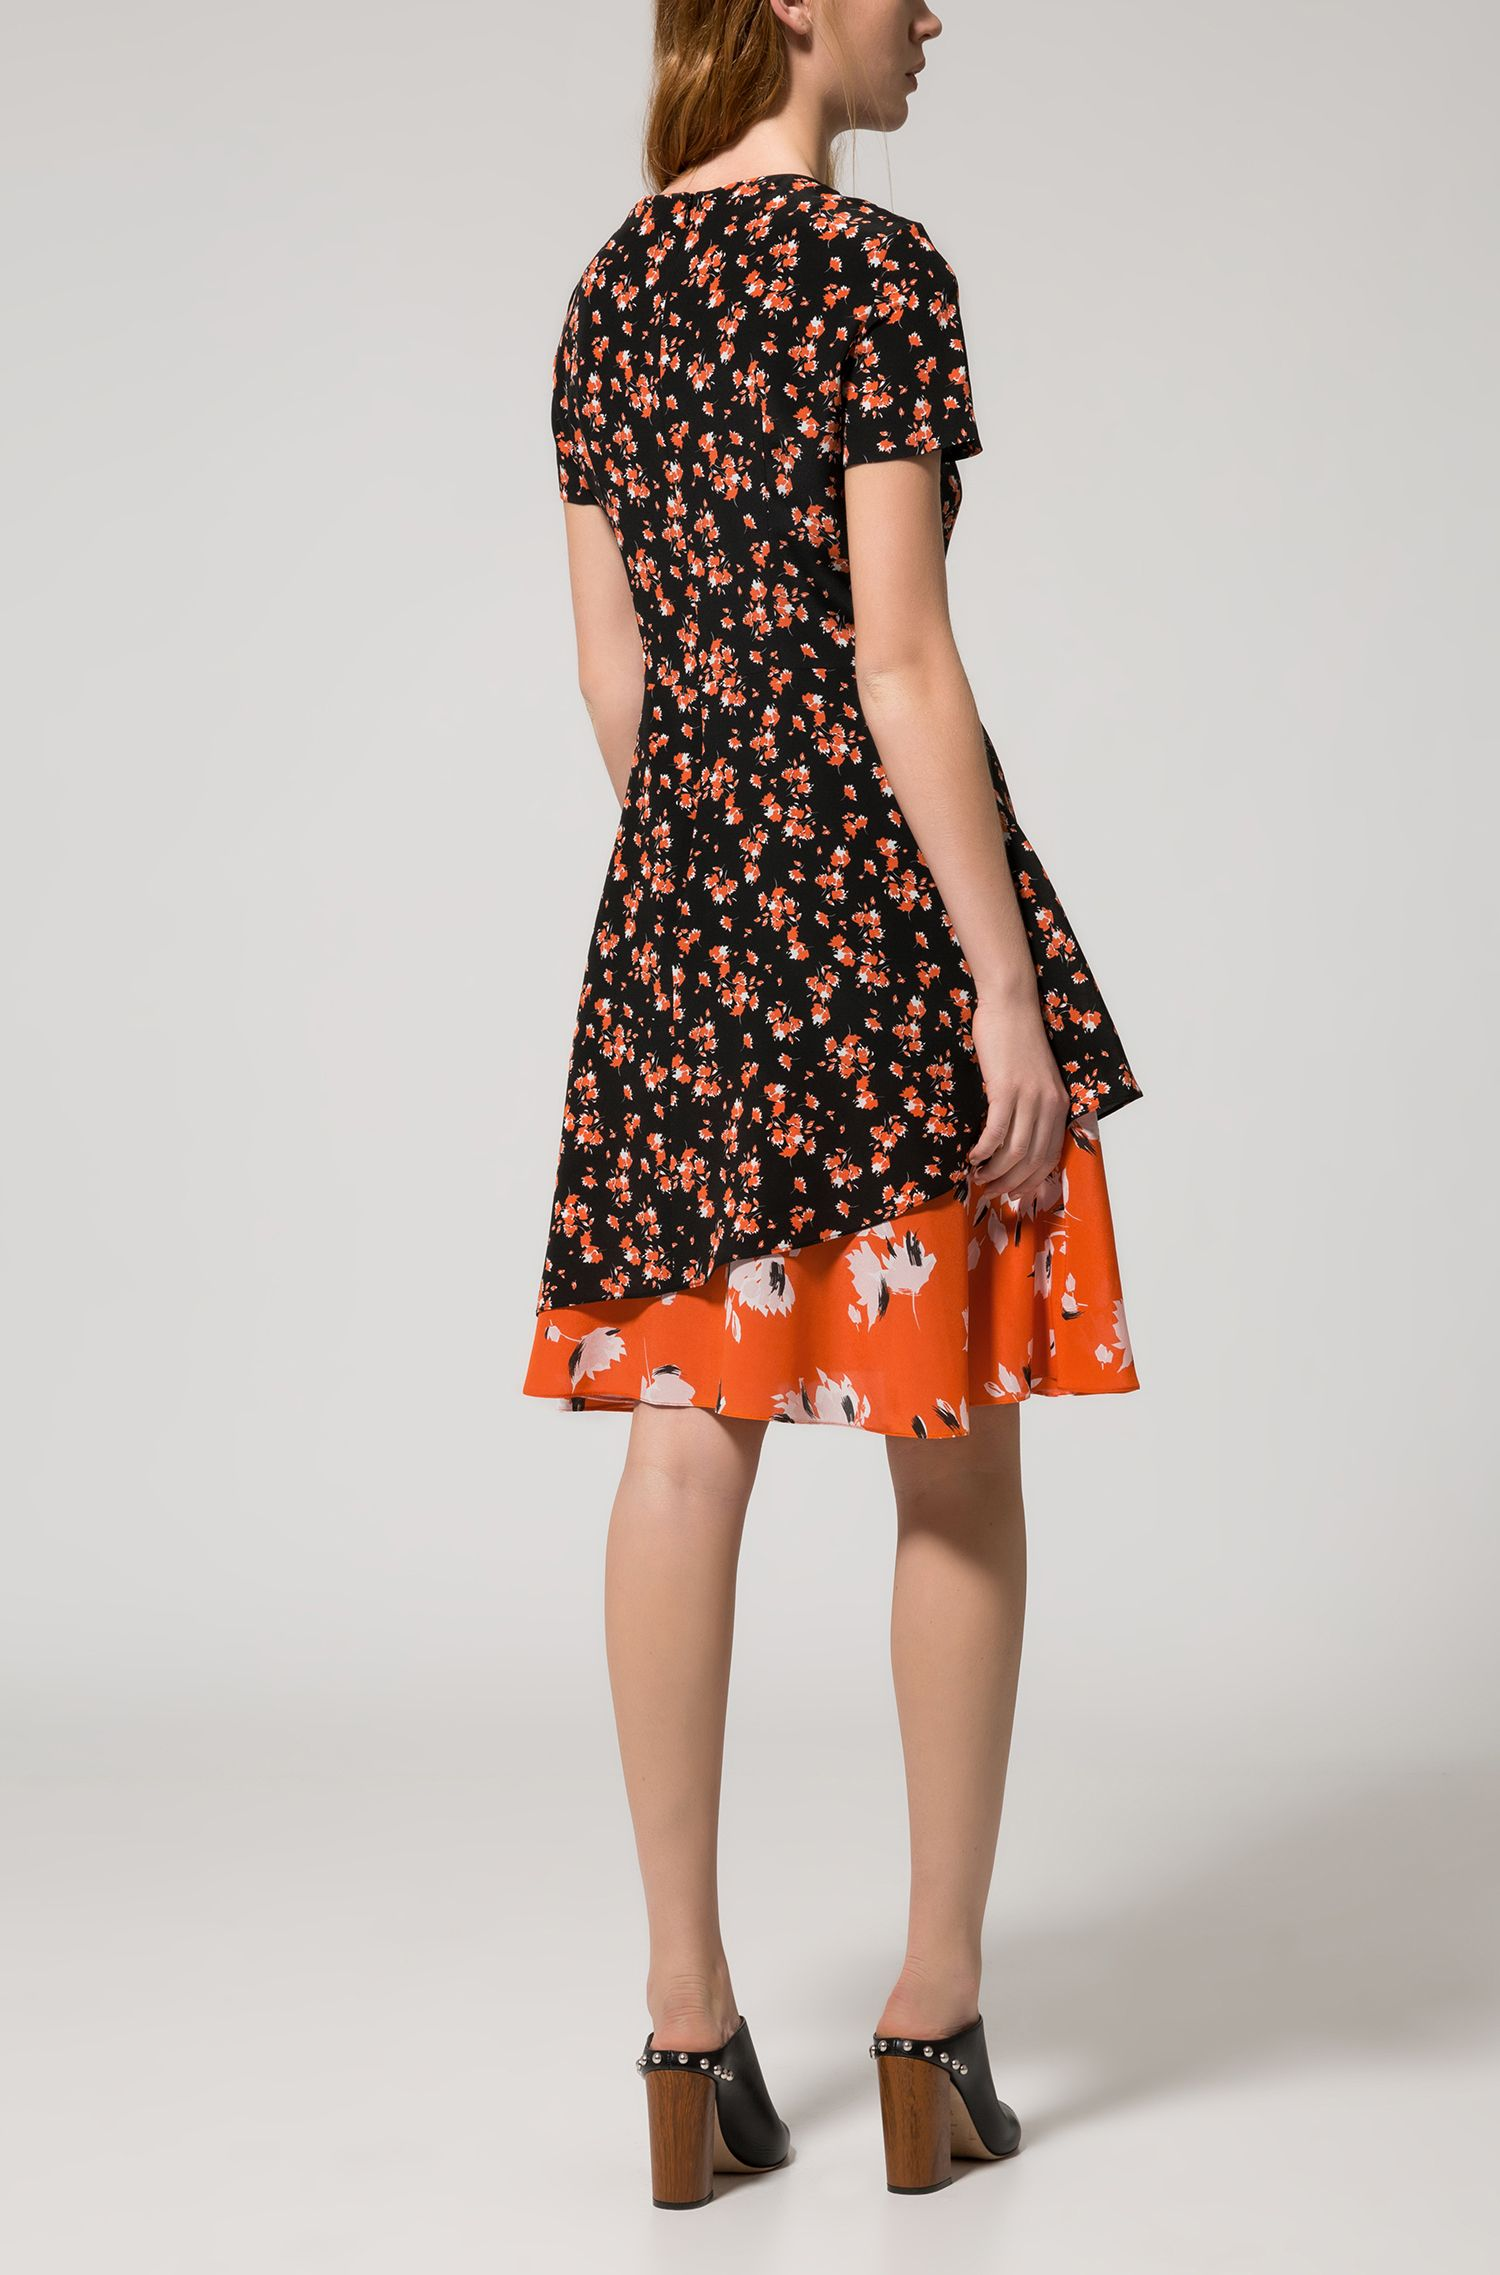 Short-sleeved silk dress with patched floral prints HUGO BOSS